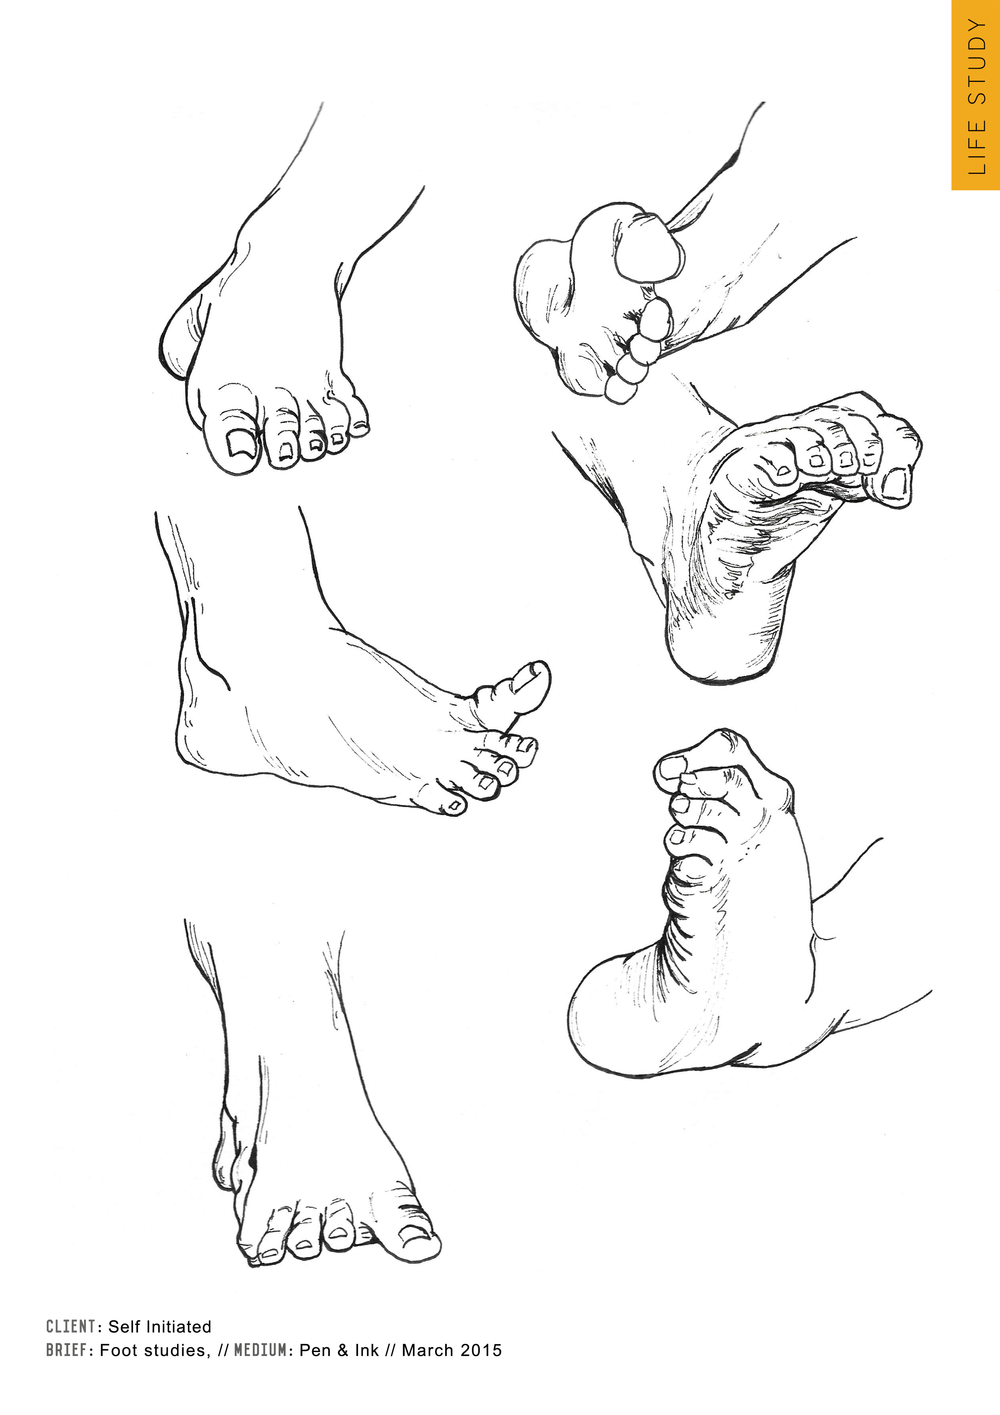 Medical Art Education Trust - ink studies of the foot